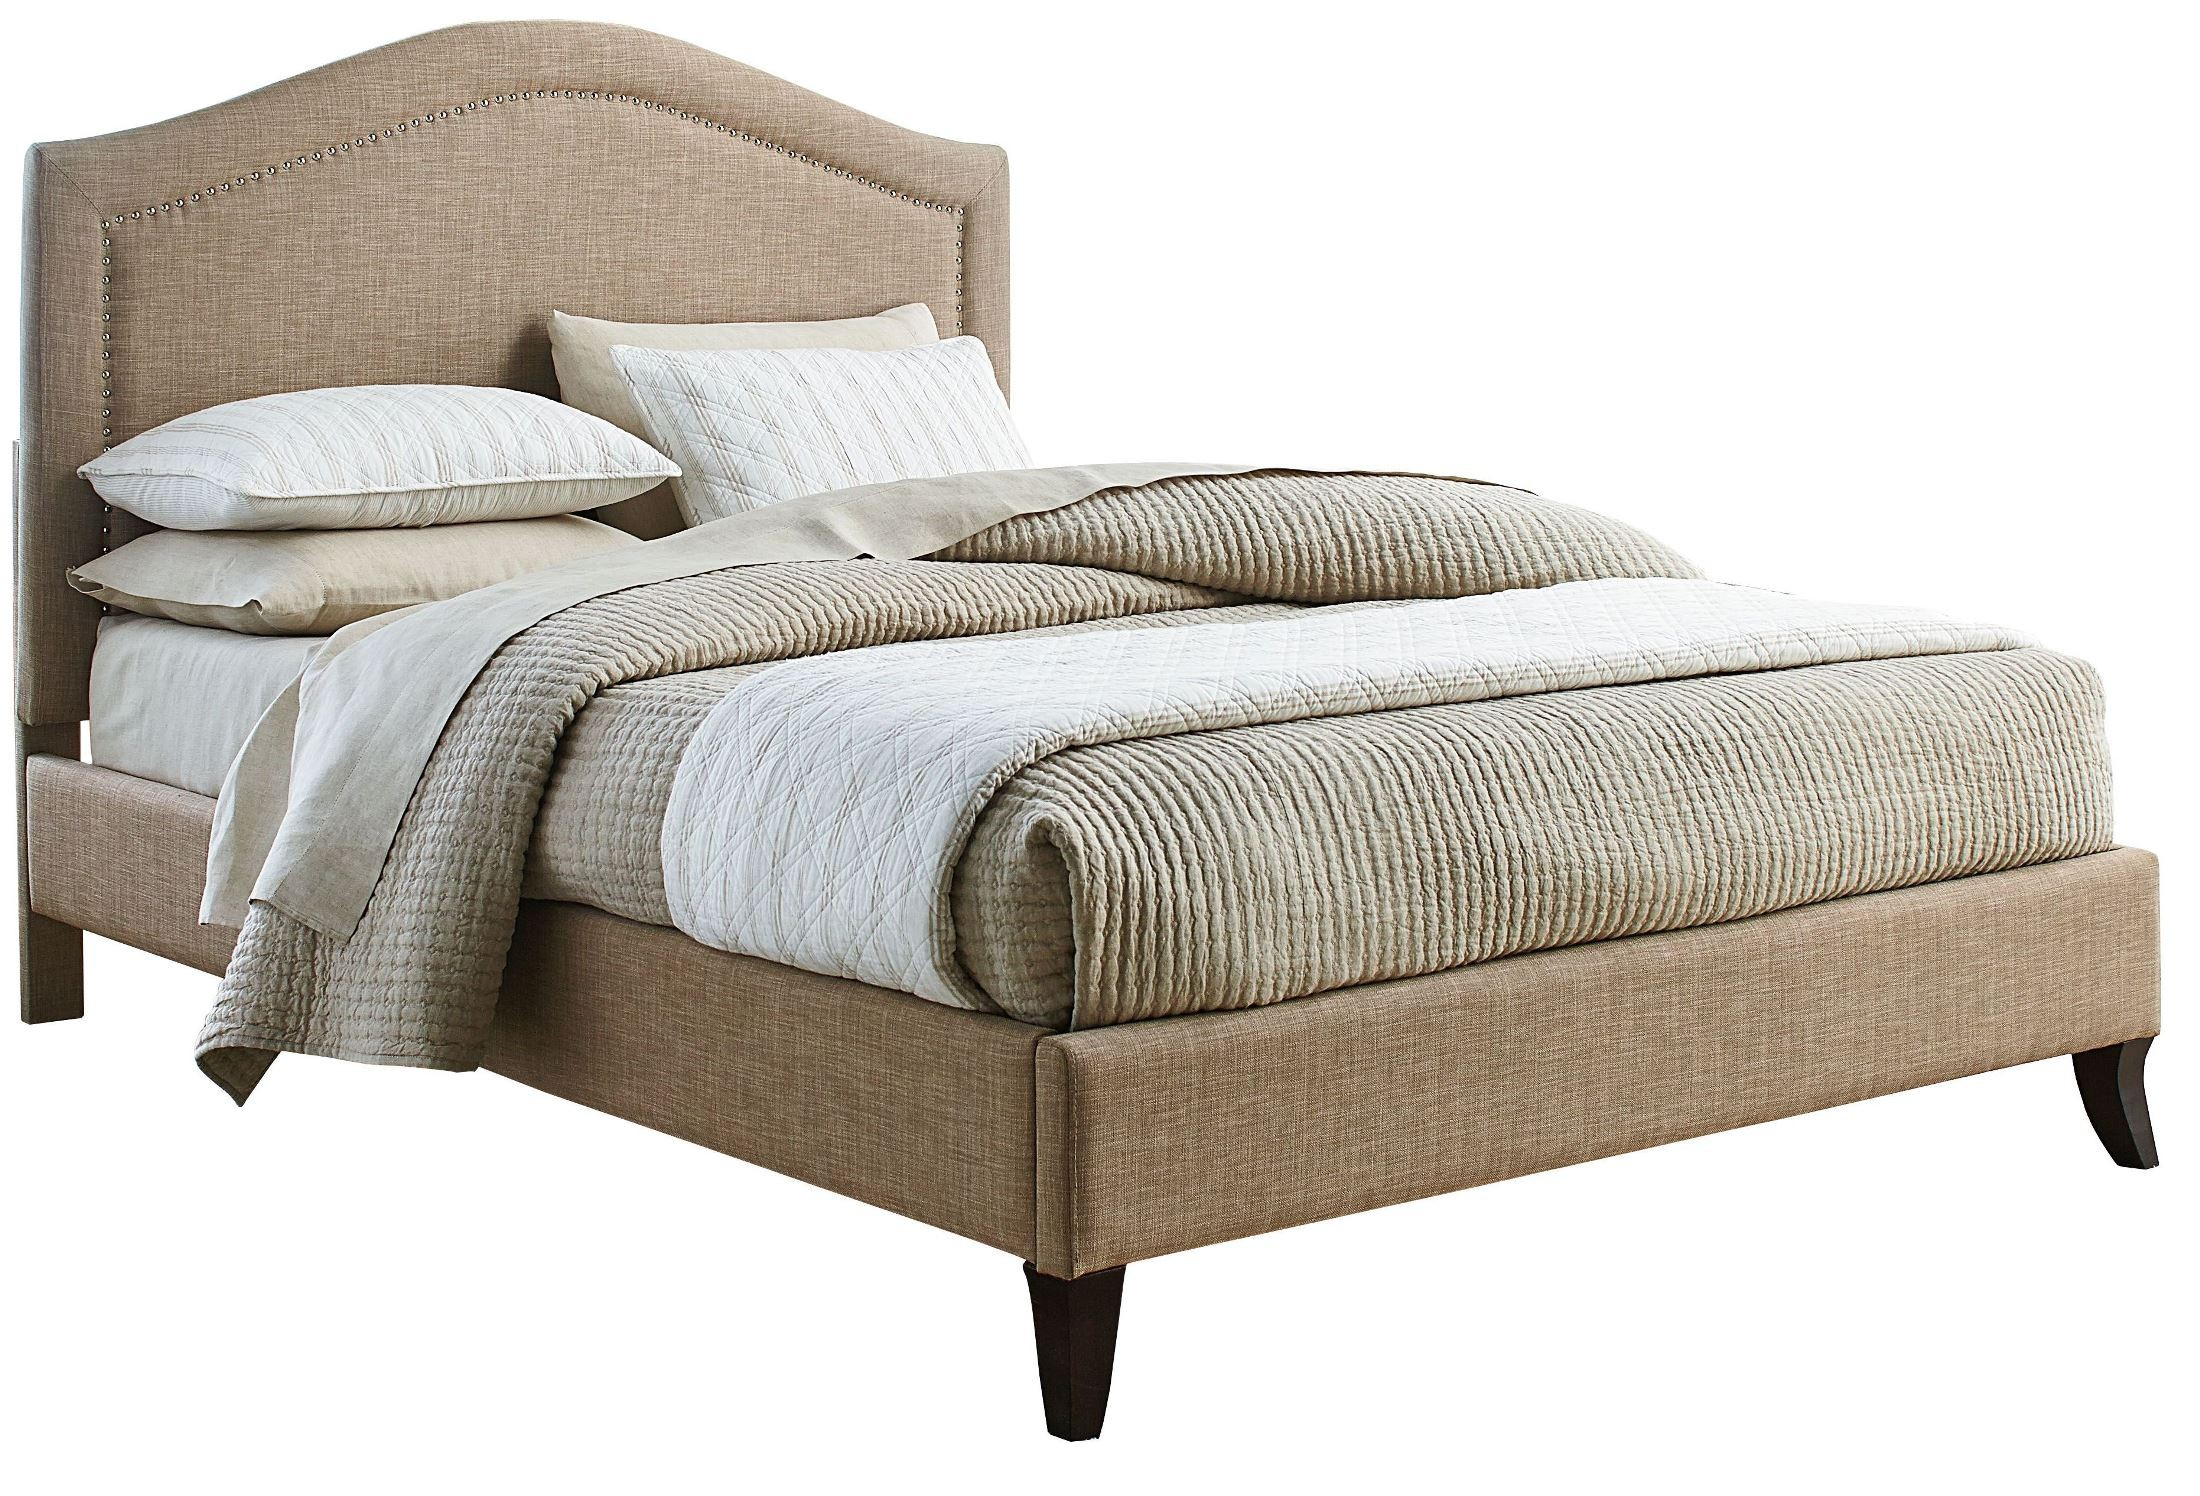 Cream Tufted Linen Larkspur Bed | homeslook.info